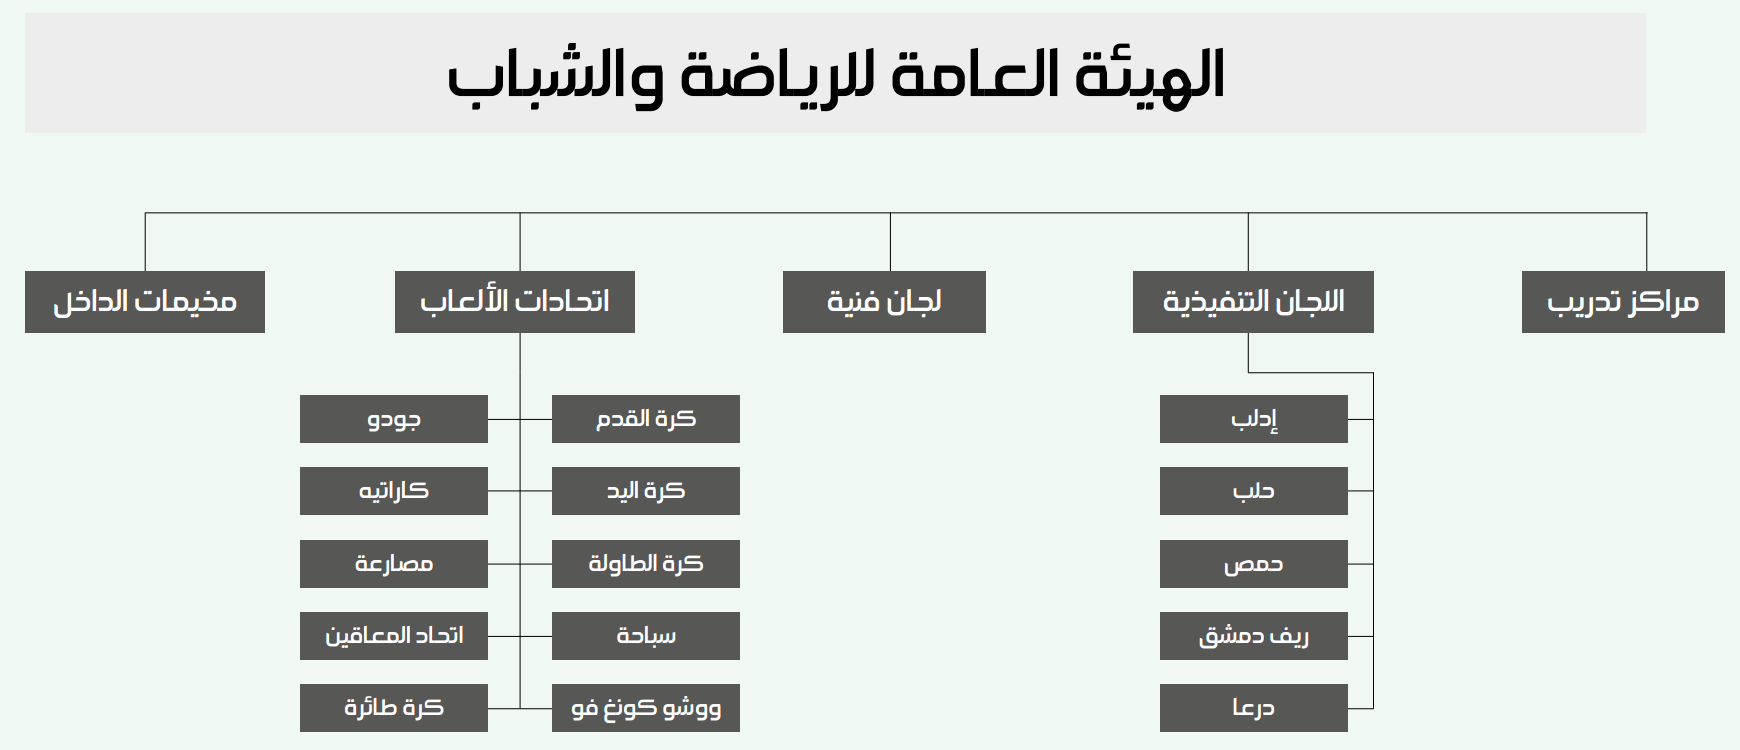 Diagram showing the structure of the General Commission for Youth and Sports (Enab Baladi)